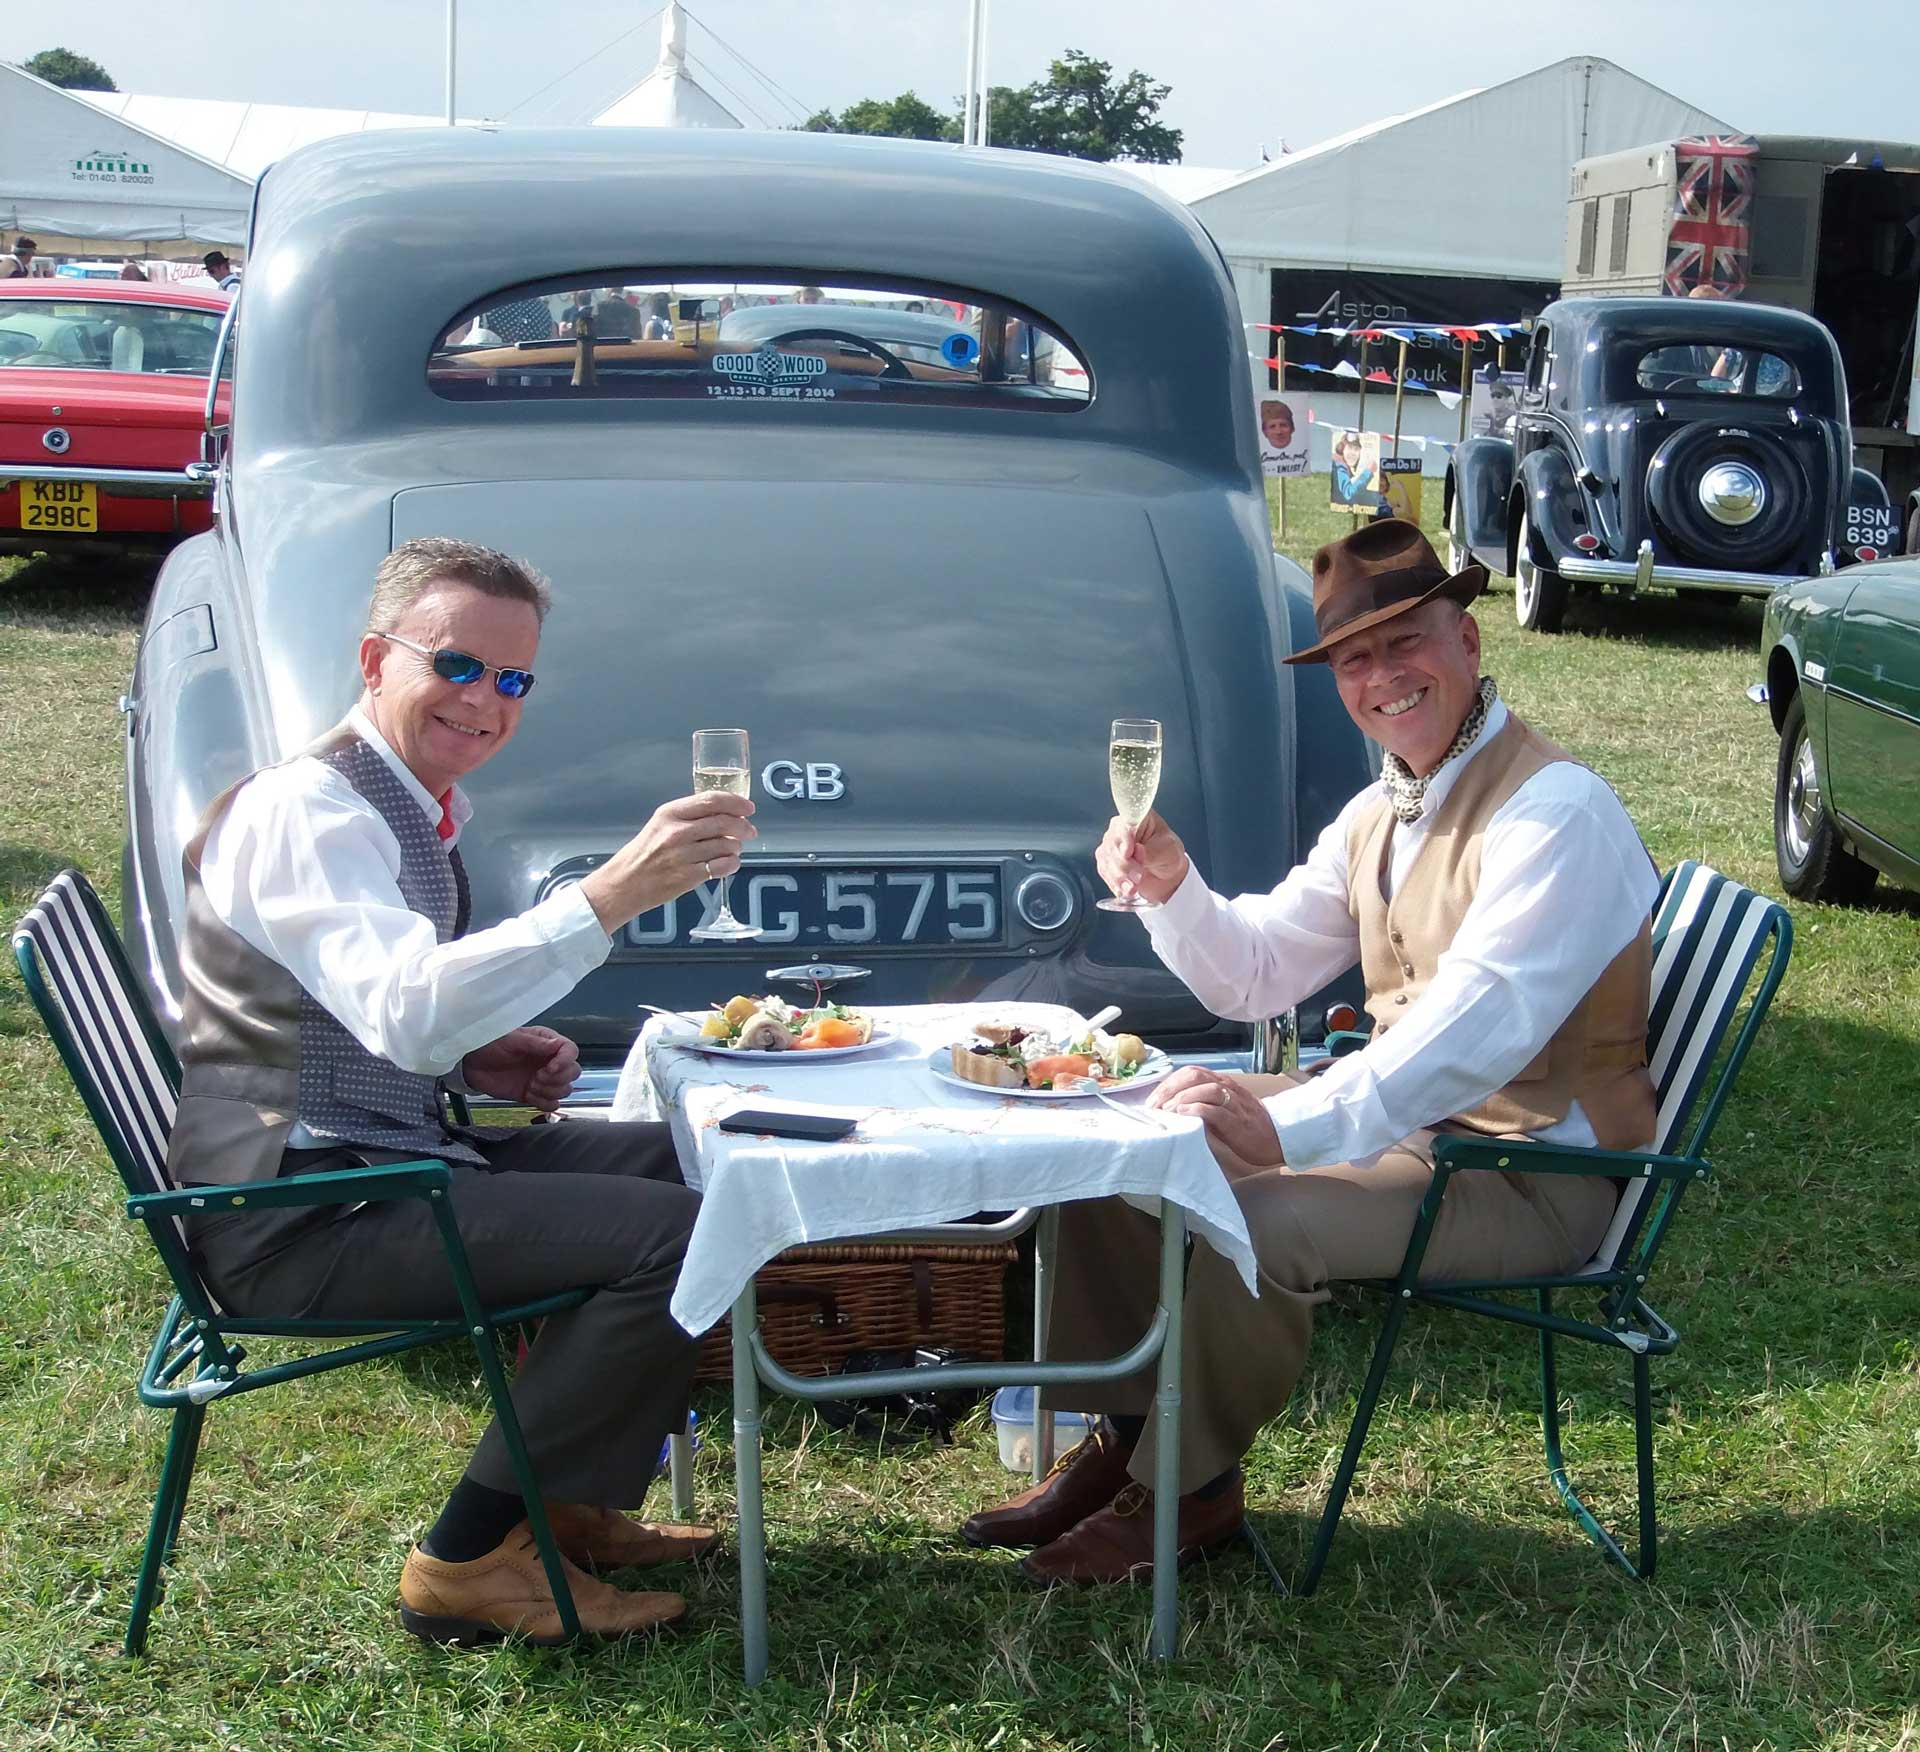 Goodwood Revival 2021